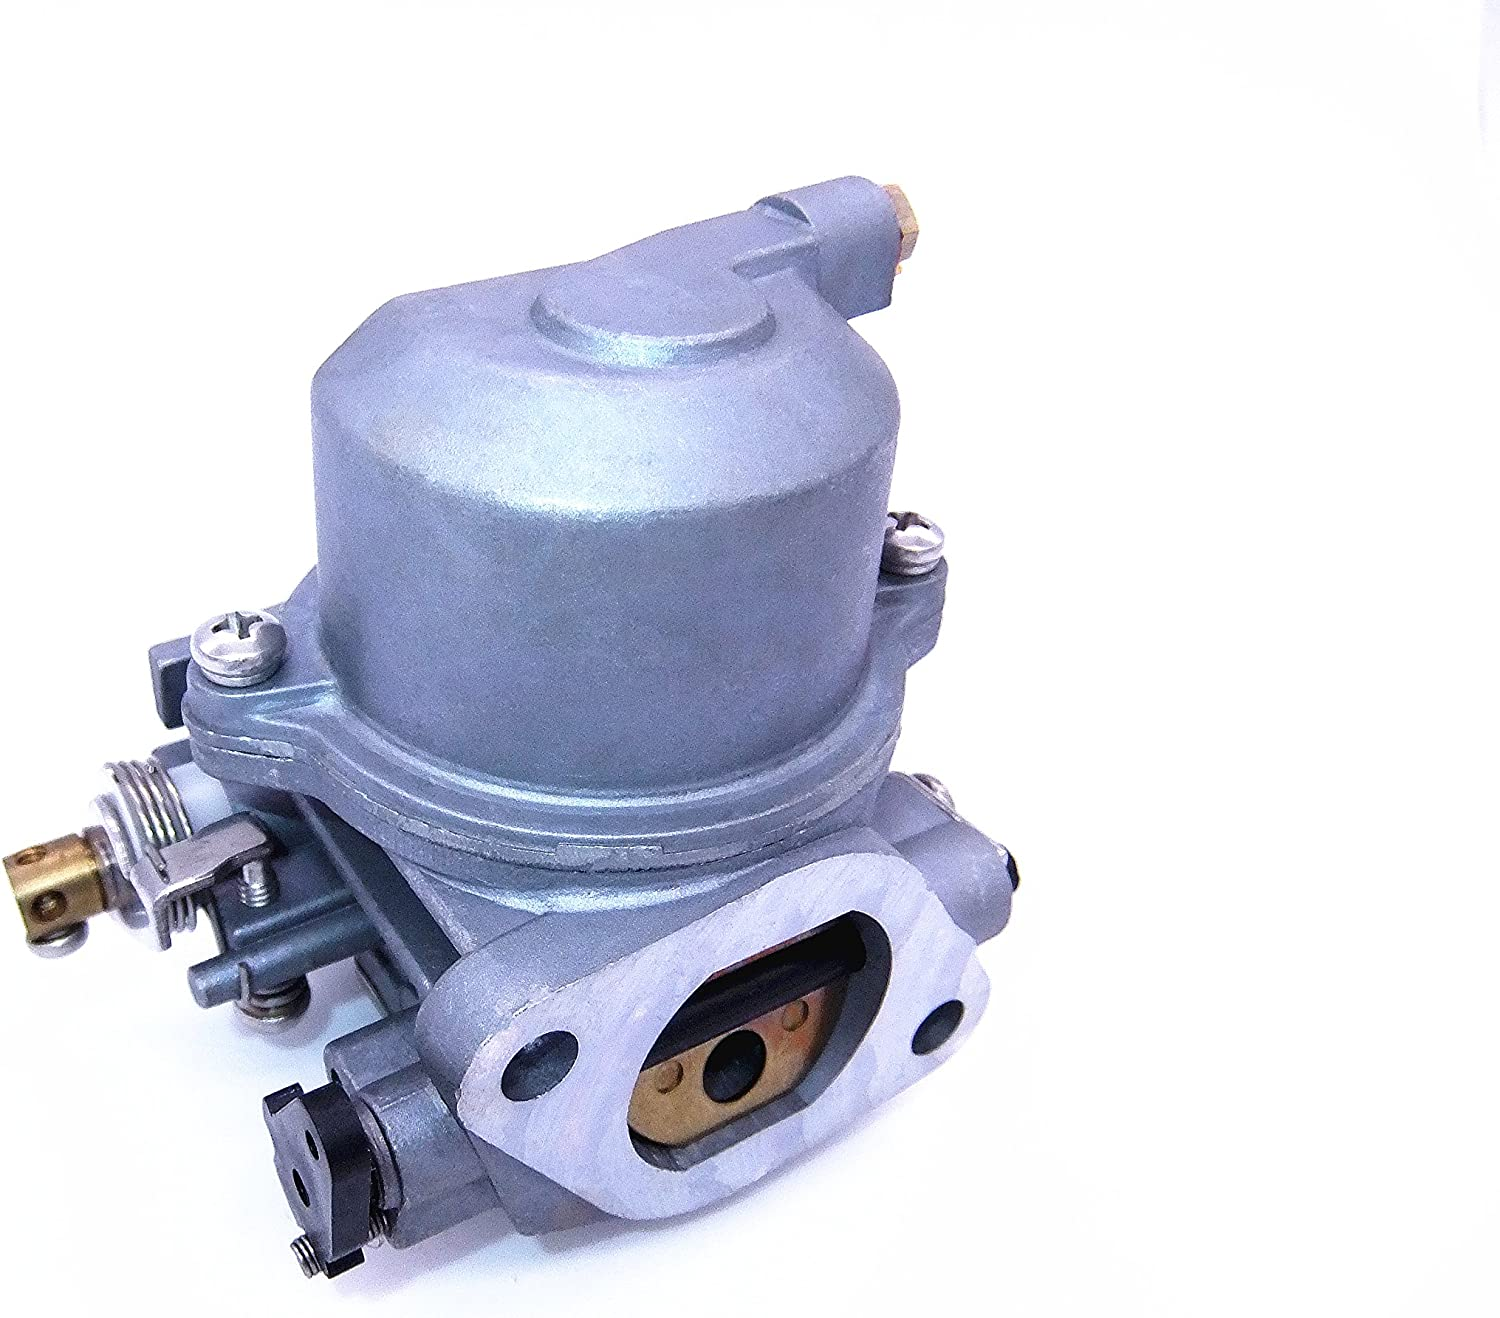 SouthMarine Boat Motor Carbs Carburetor Assy 67D-14301-13 67D-14301-12 67D-14301-11 for Yamaha 4-Stroke 4hp 5hp Outboard Motor Engine